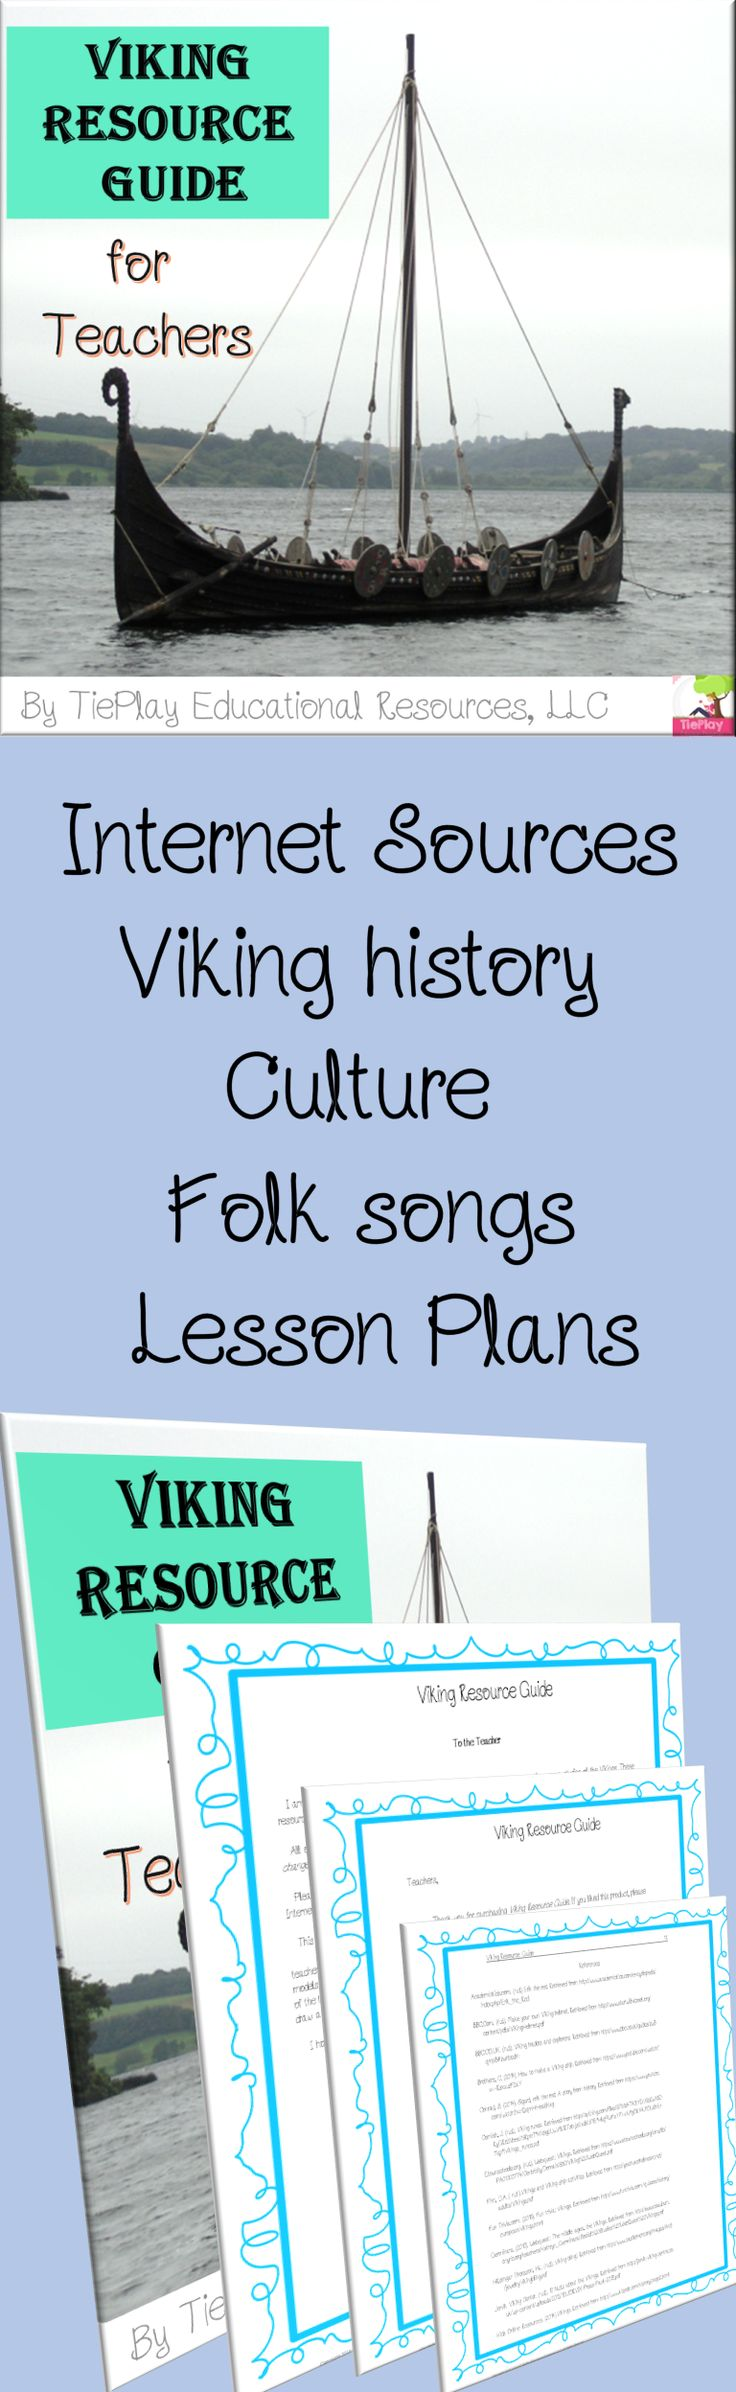 Price $4.00 Need to have a unit ready to go... fast? Viking Resource Guide includes lesson plan links...and more to Viking history and culture. Teachers can pick and choose the best activities with previewed sources for your class.This resource includes: teacher's guides,teaching materials,  presentations/visual aids, informational text on history and culture, games, Viking sports,  models of Viking ships, maps, naalbinding, recommended books of the age, vocabulary, and much more!